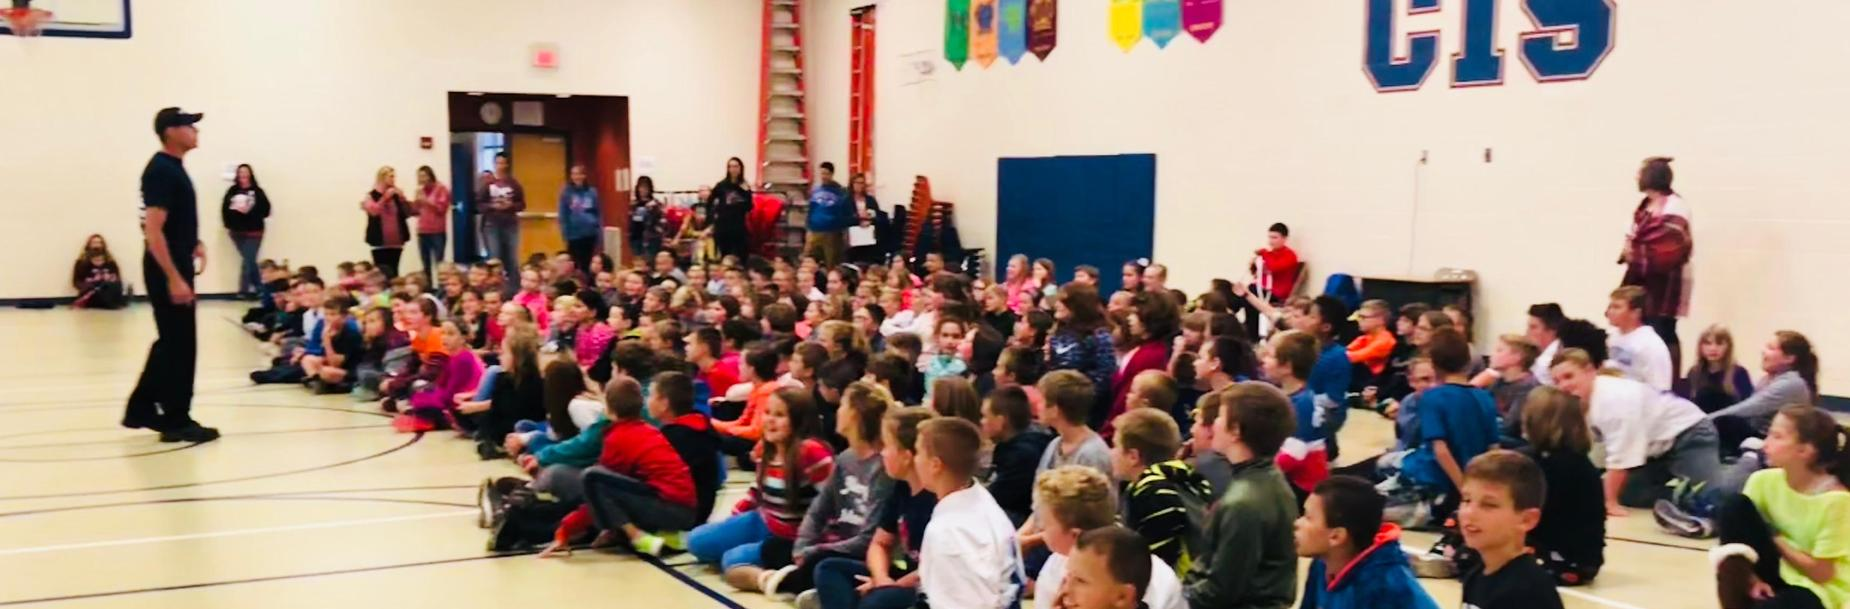 Students listen to fireman at assembly